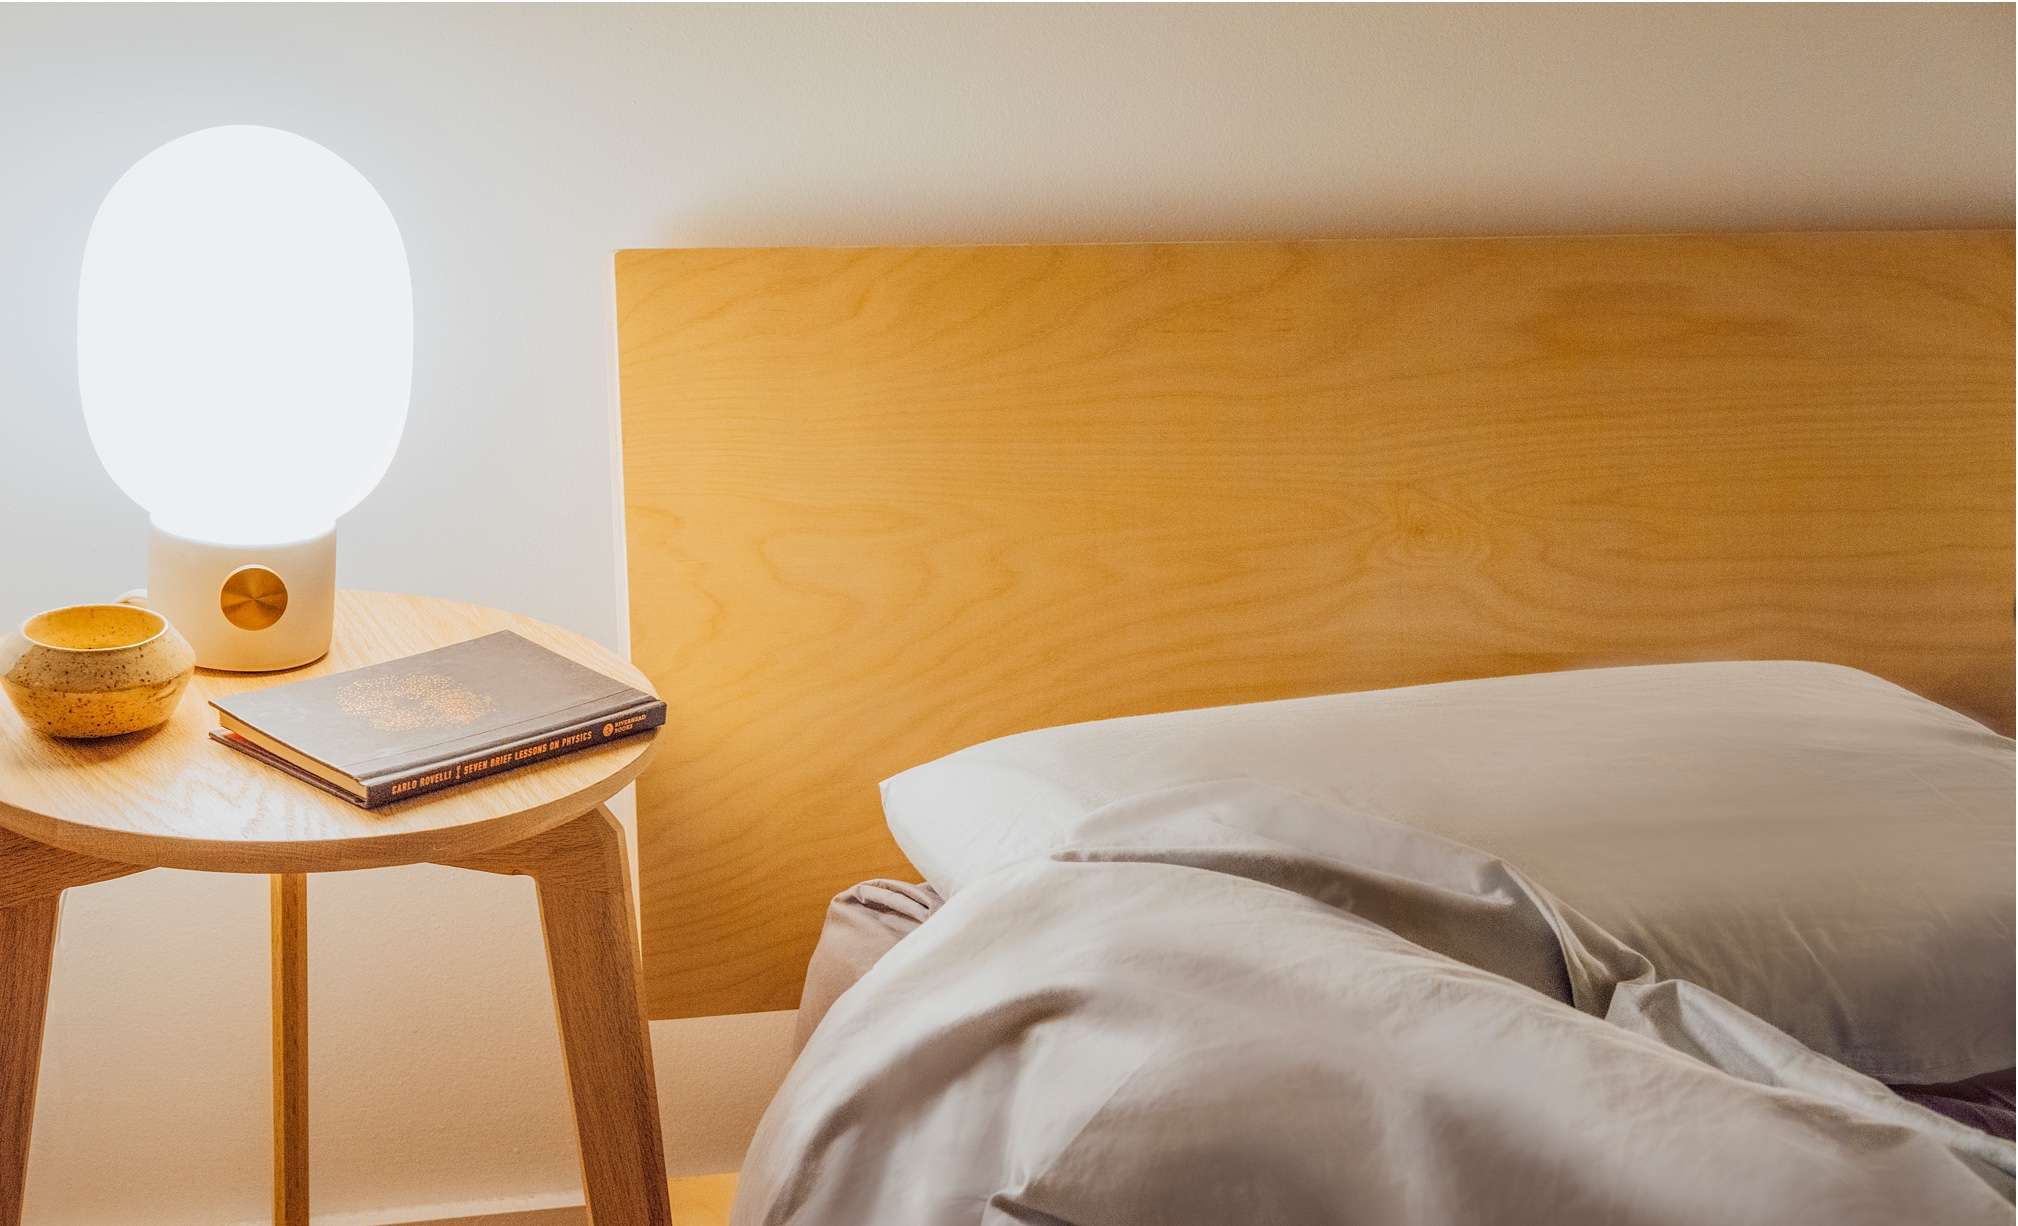 A Floyd bed in birch beside a small nightstand with a glowing light.